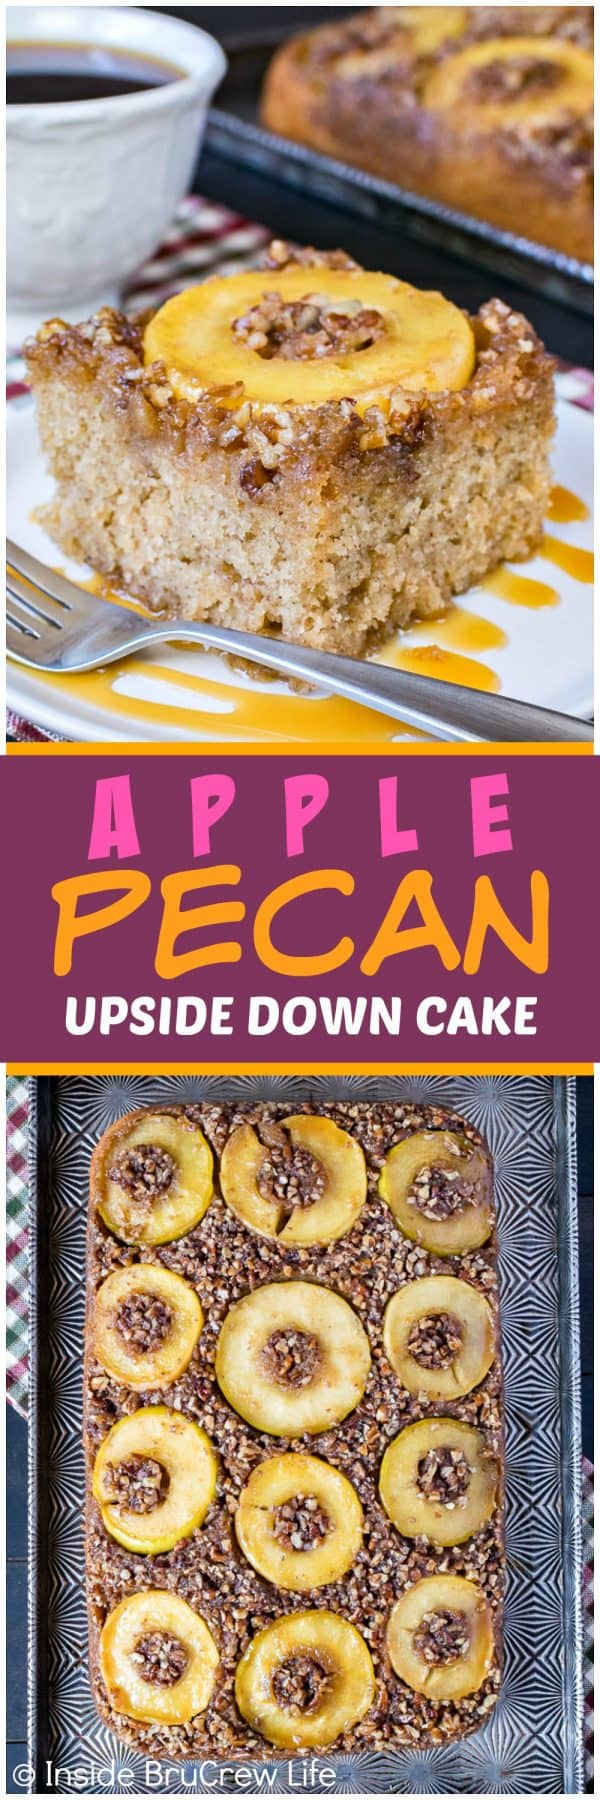 Apple Pecan Upside Down Cake - a layer of apple rings, caramel, and nuts baked into the bottom of this cake makes it so pretty. Easy recipe for fall parties or the holidays.